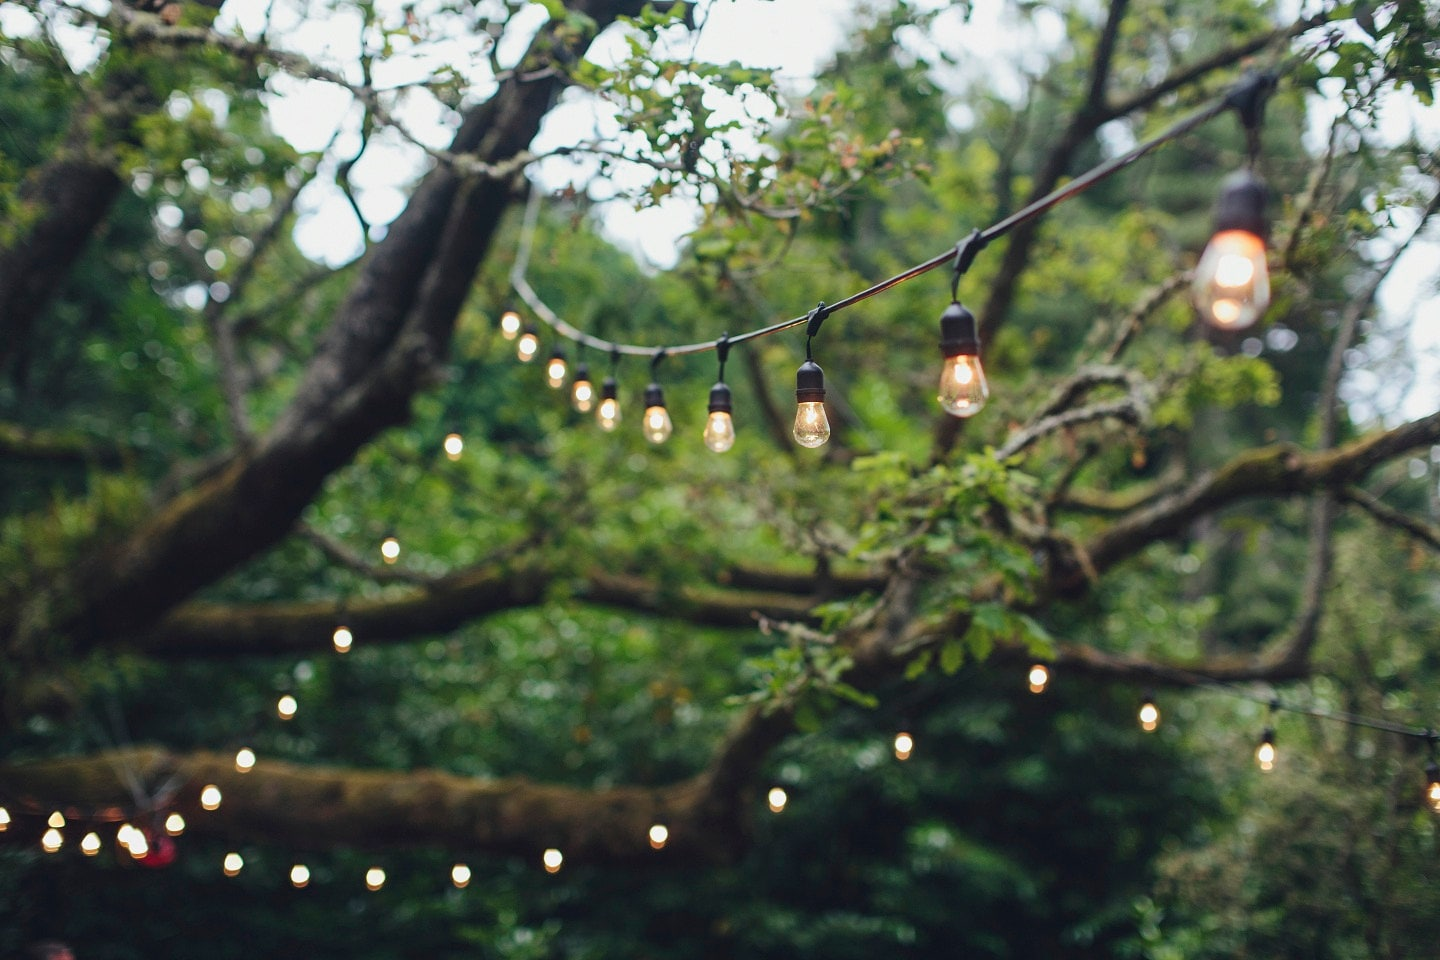 Outdoor String Lights Etsy : Christmas Lights - Vintage outdoor string lights for wedding, party, patio,with 24 edison ...